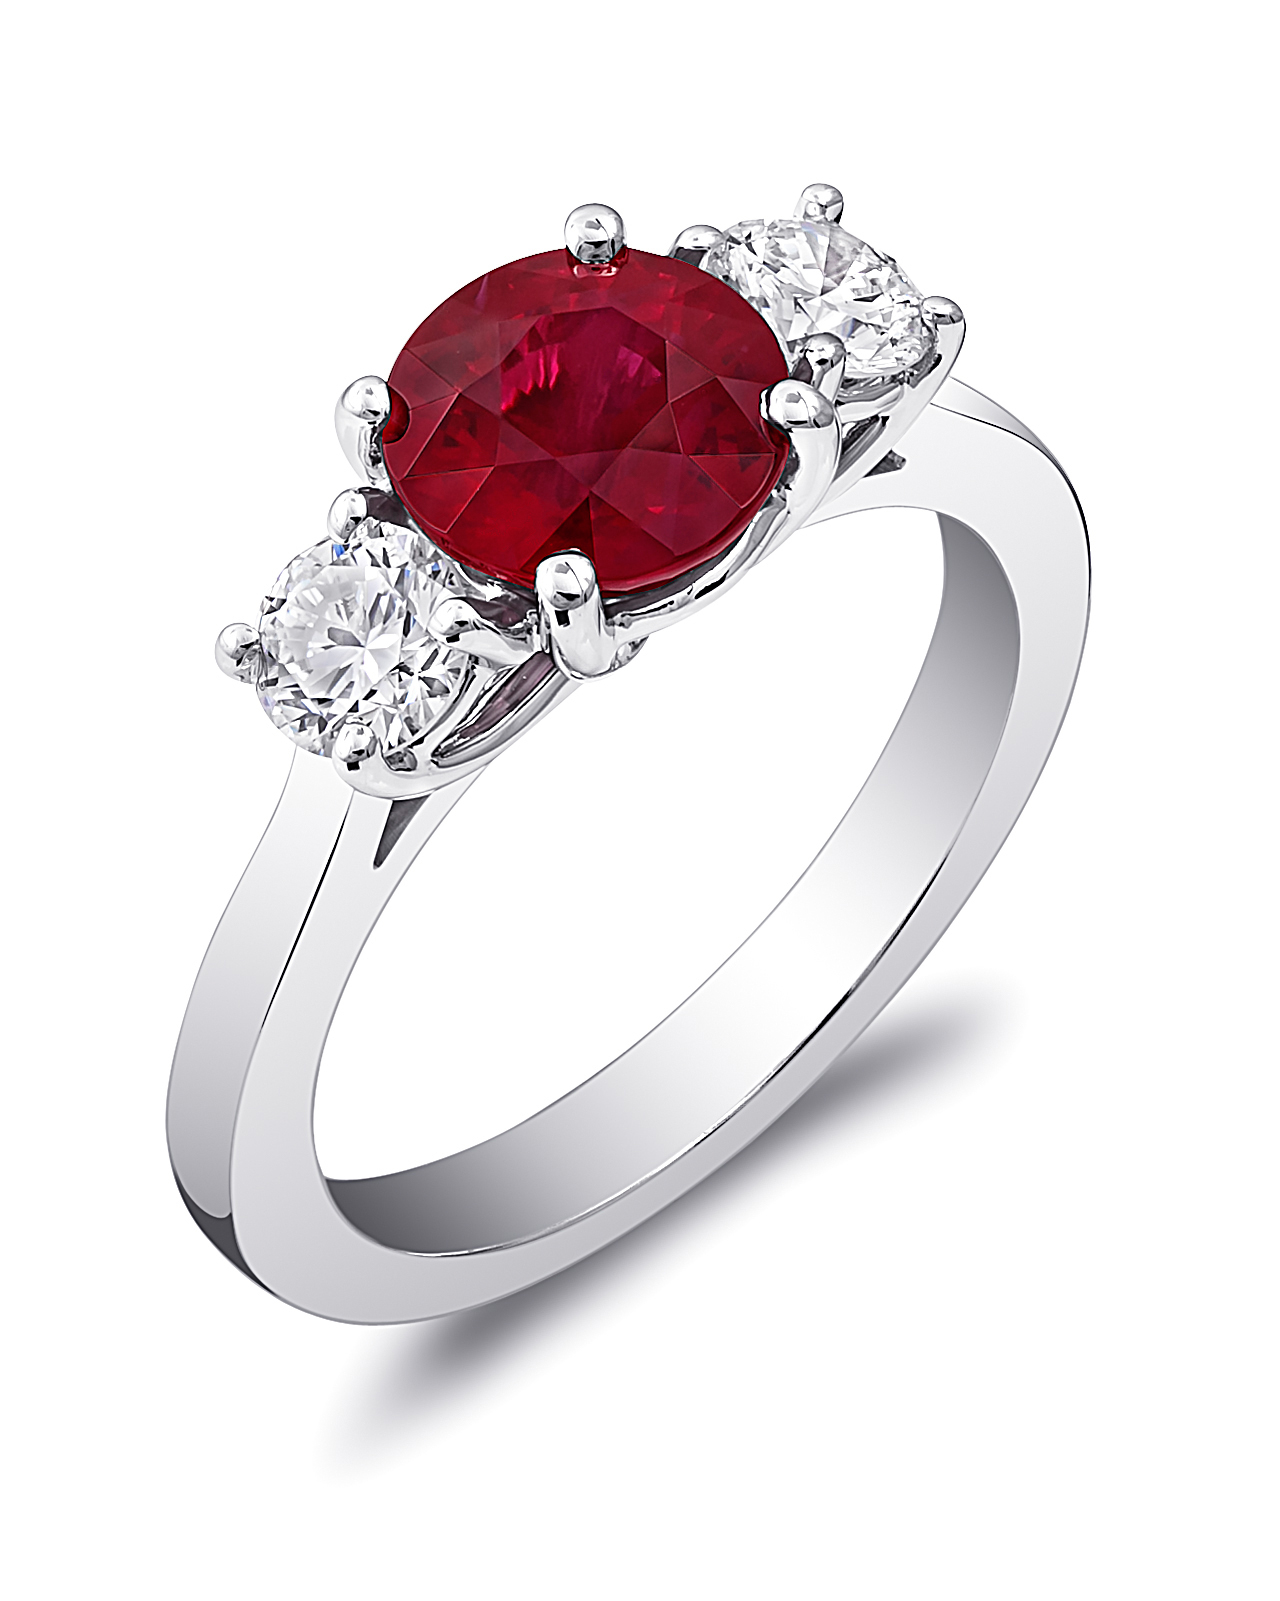 coast-diamond-ruby-and-diamond-engagement-ring-0816.jpg